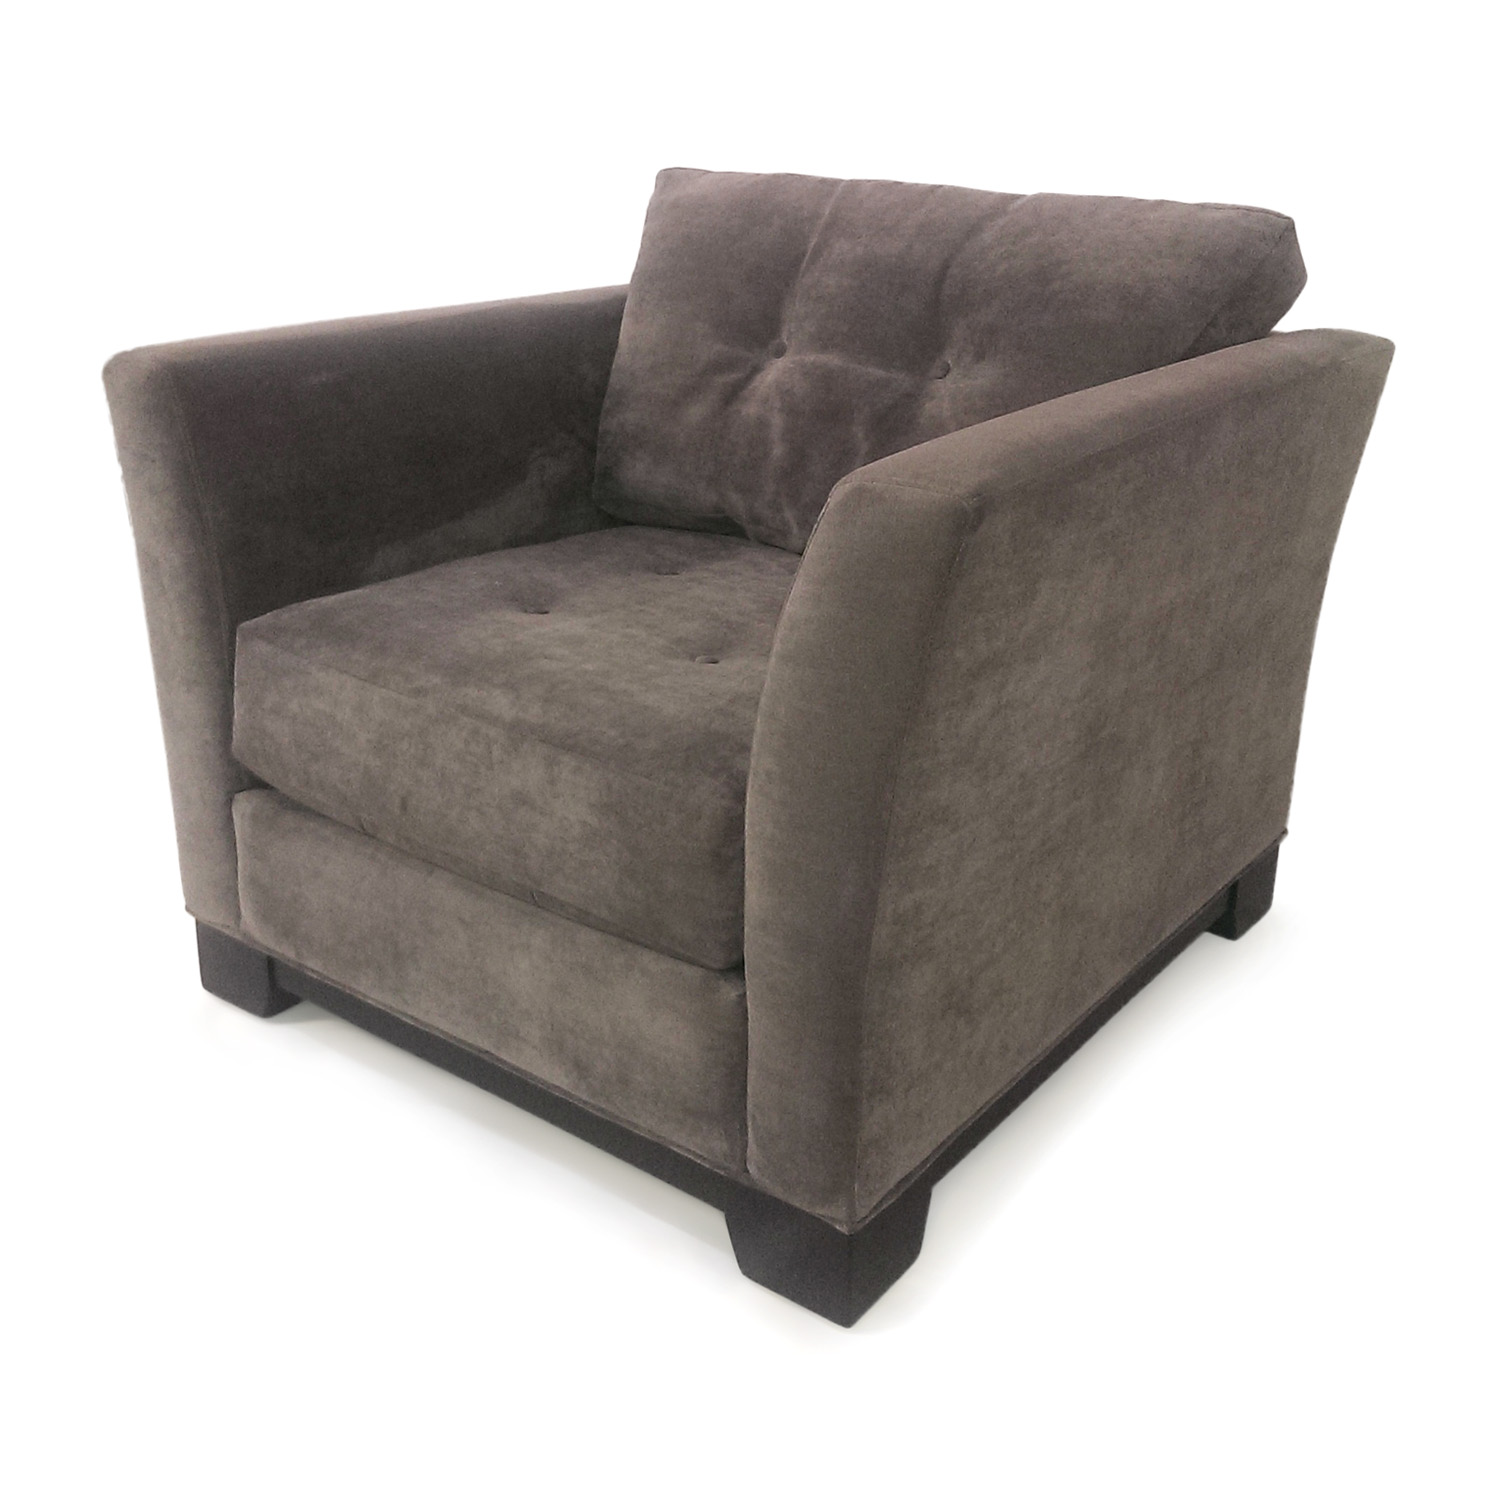 gray tufted chair chairish 30 off macy 39s grey arm chairs